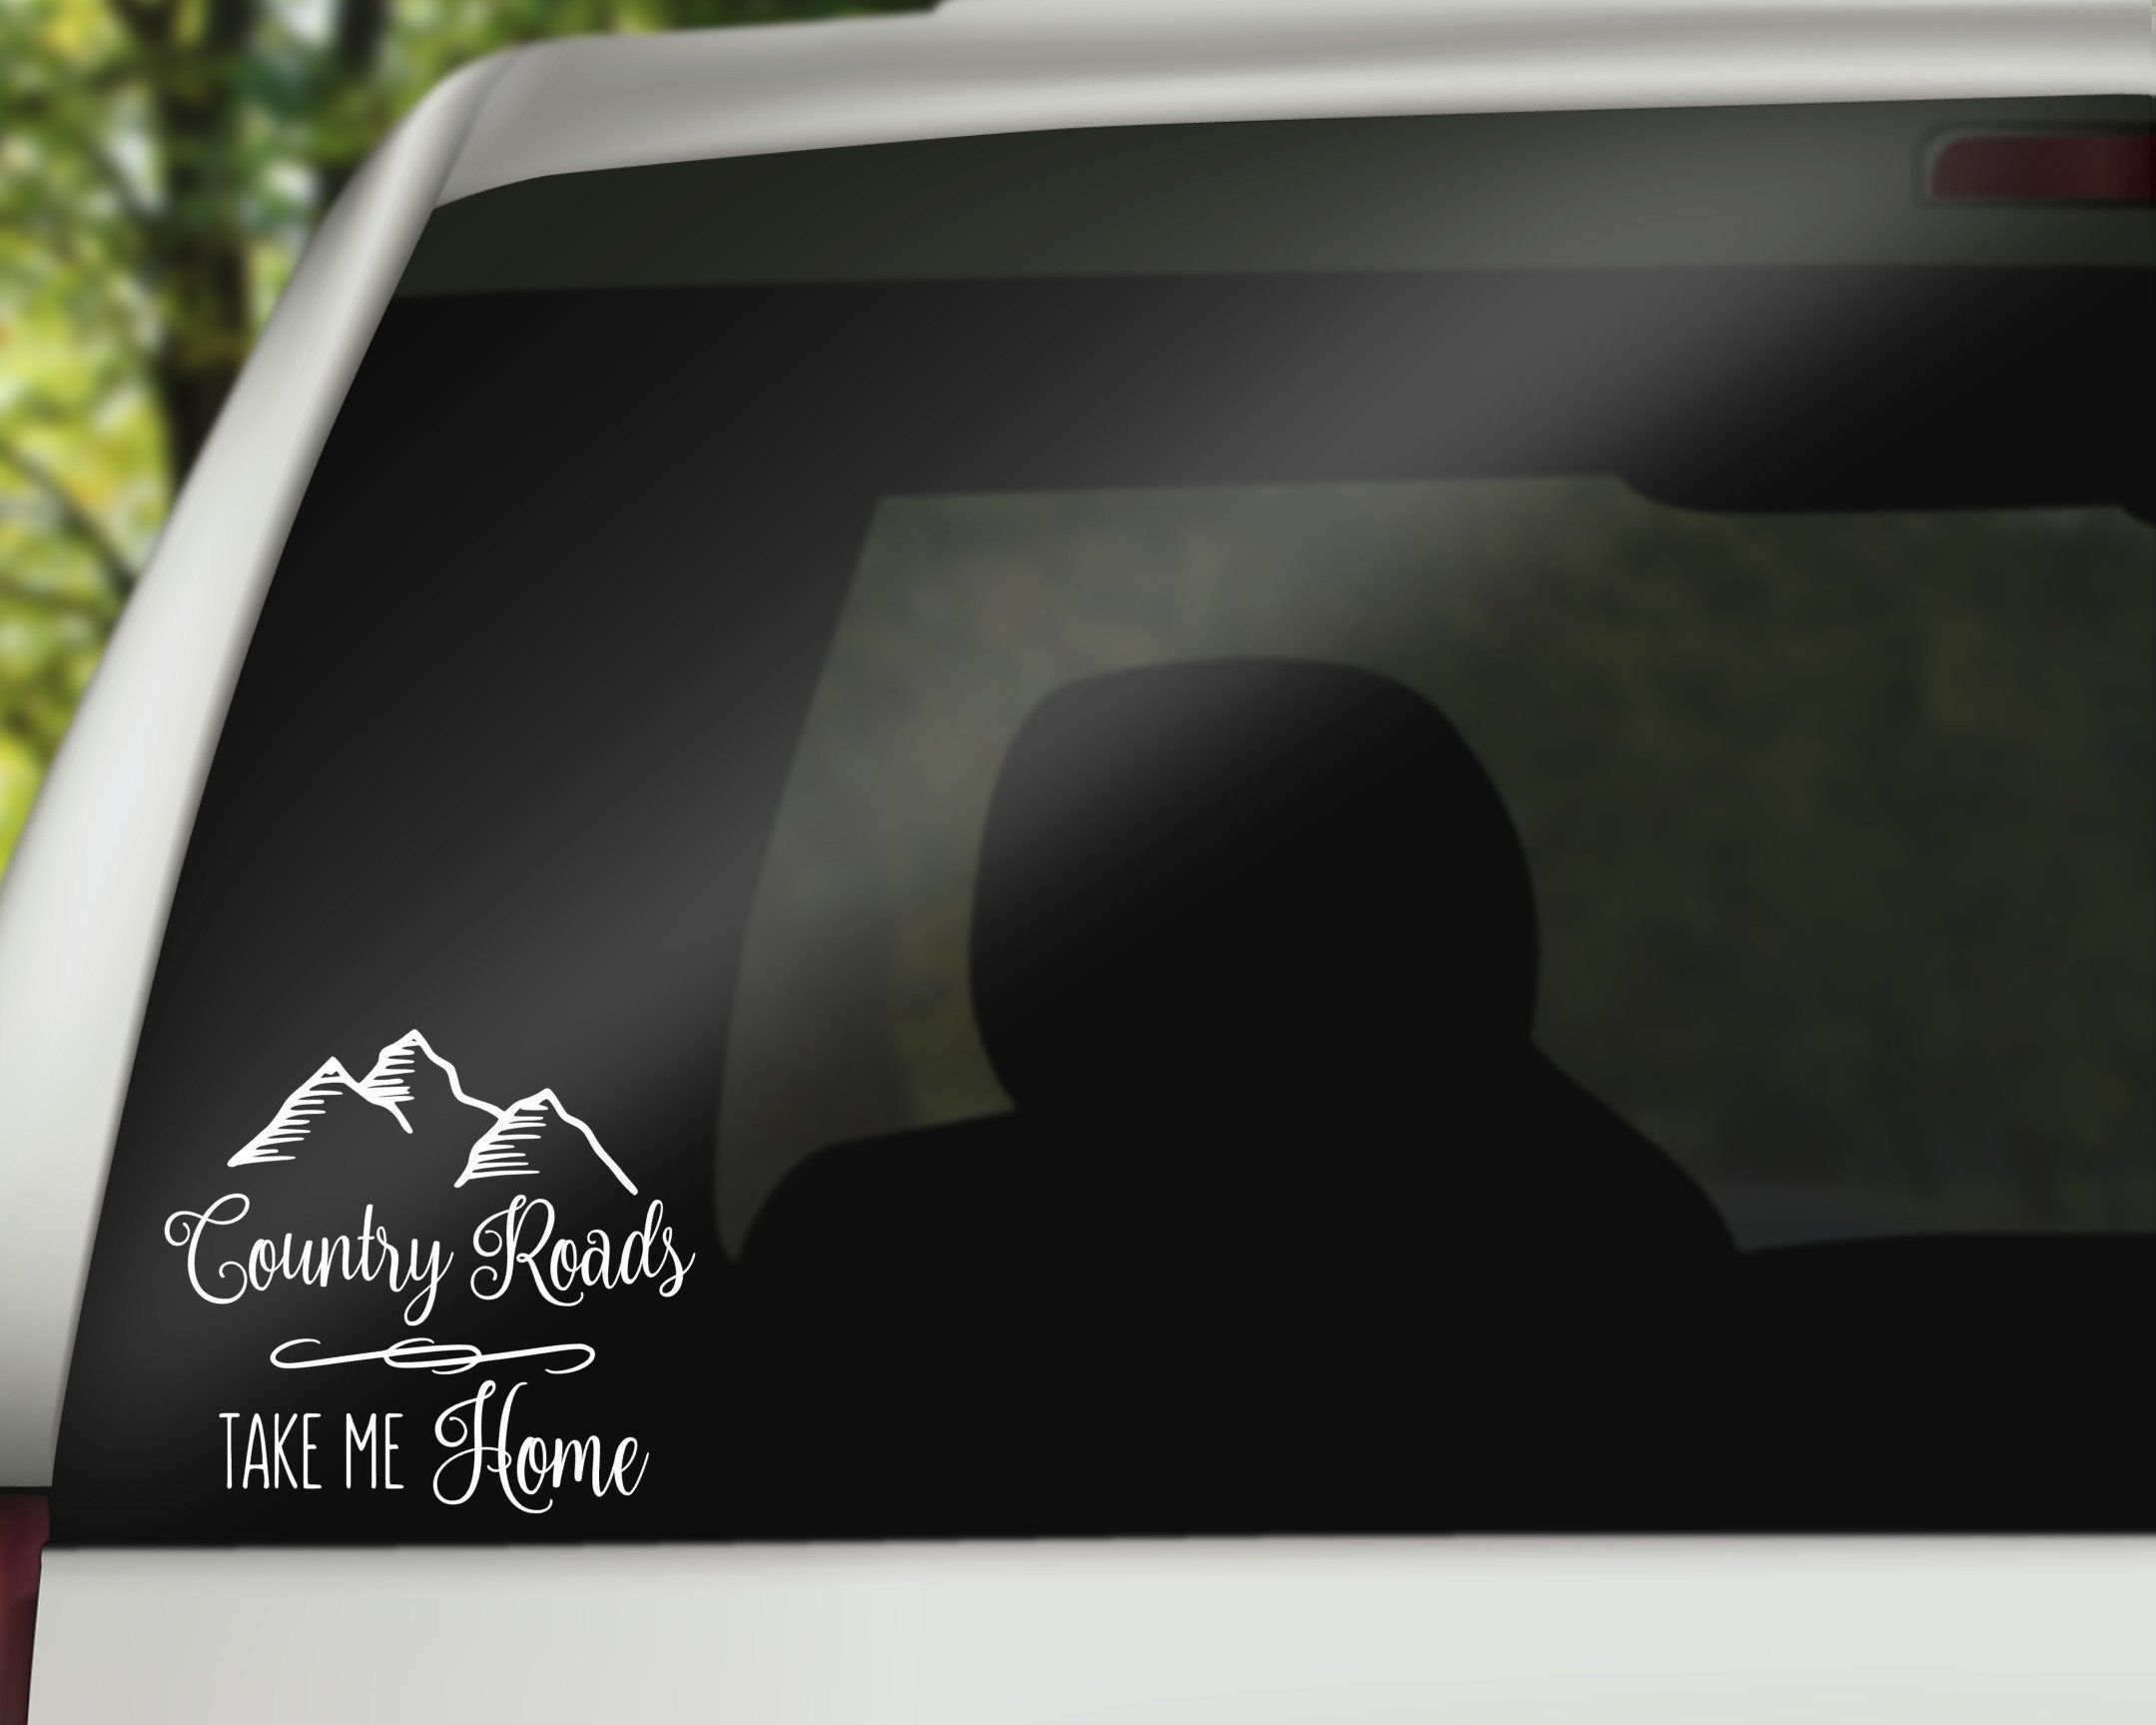 Country Roads Take Me Home Decal Car Decal West Virginia Etsy Country Roads Take Me Home Take Me Home Country Roads [ 1727 x 2159 Pixel ]